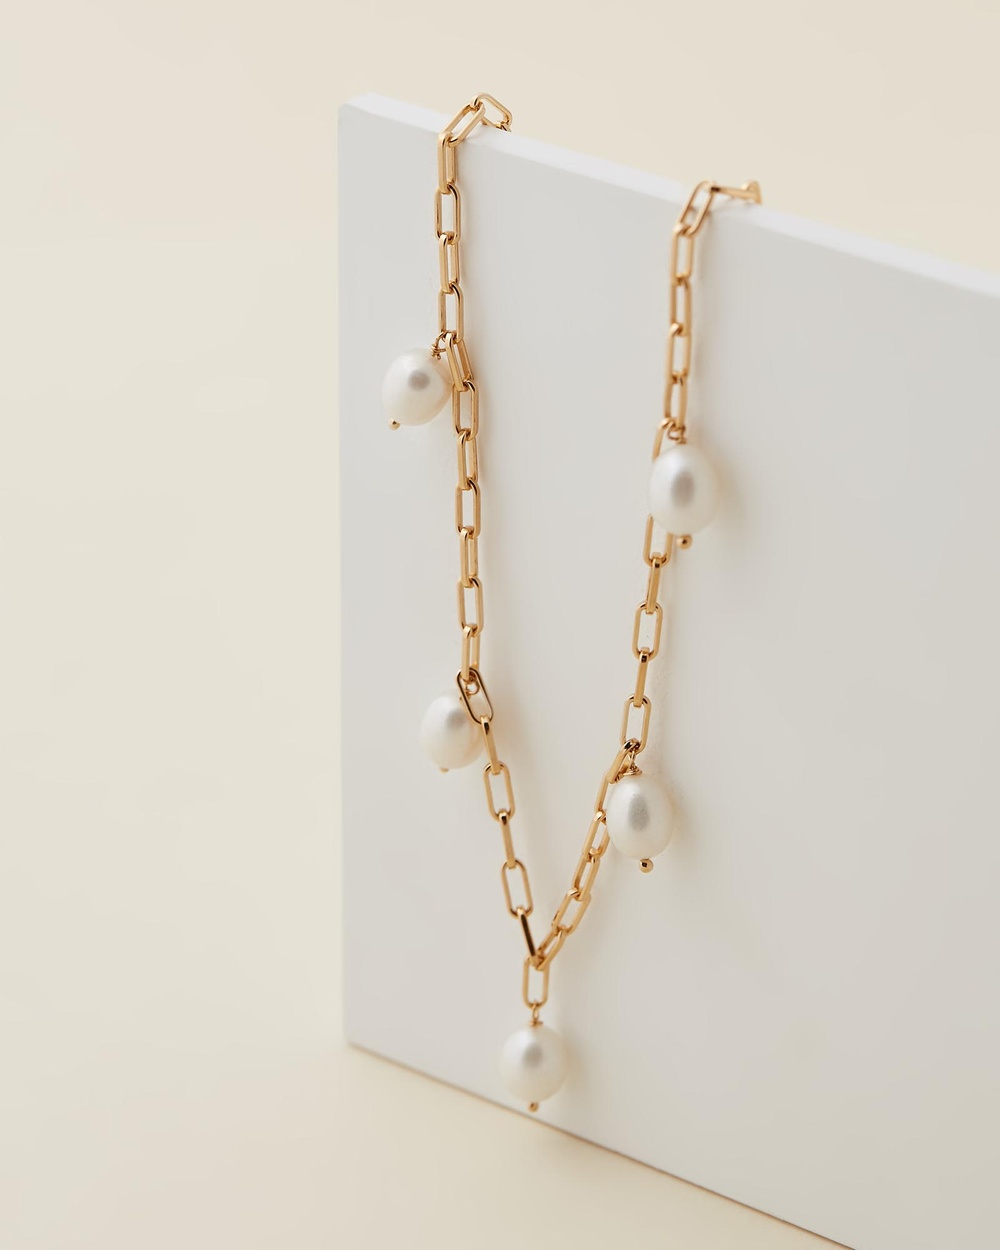 Jackie Mack Sol Pearl Necklace Jewellery 18k Yellow Gold Vermeil